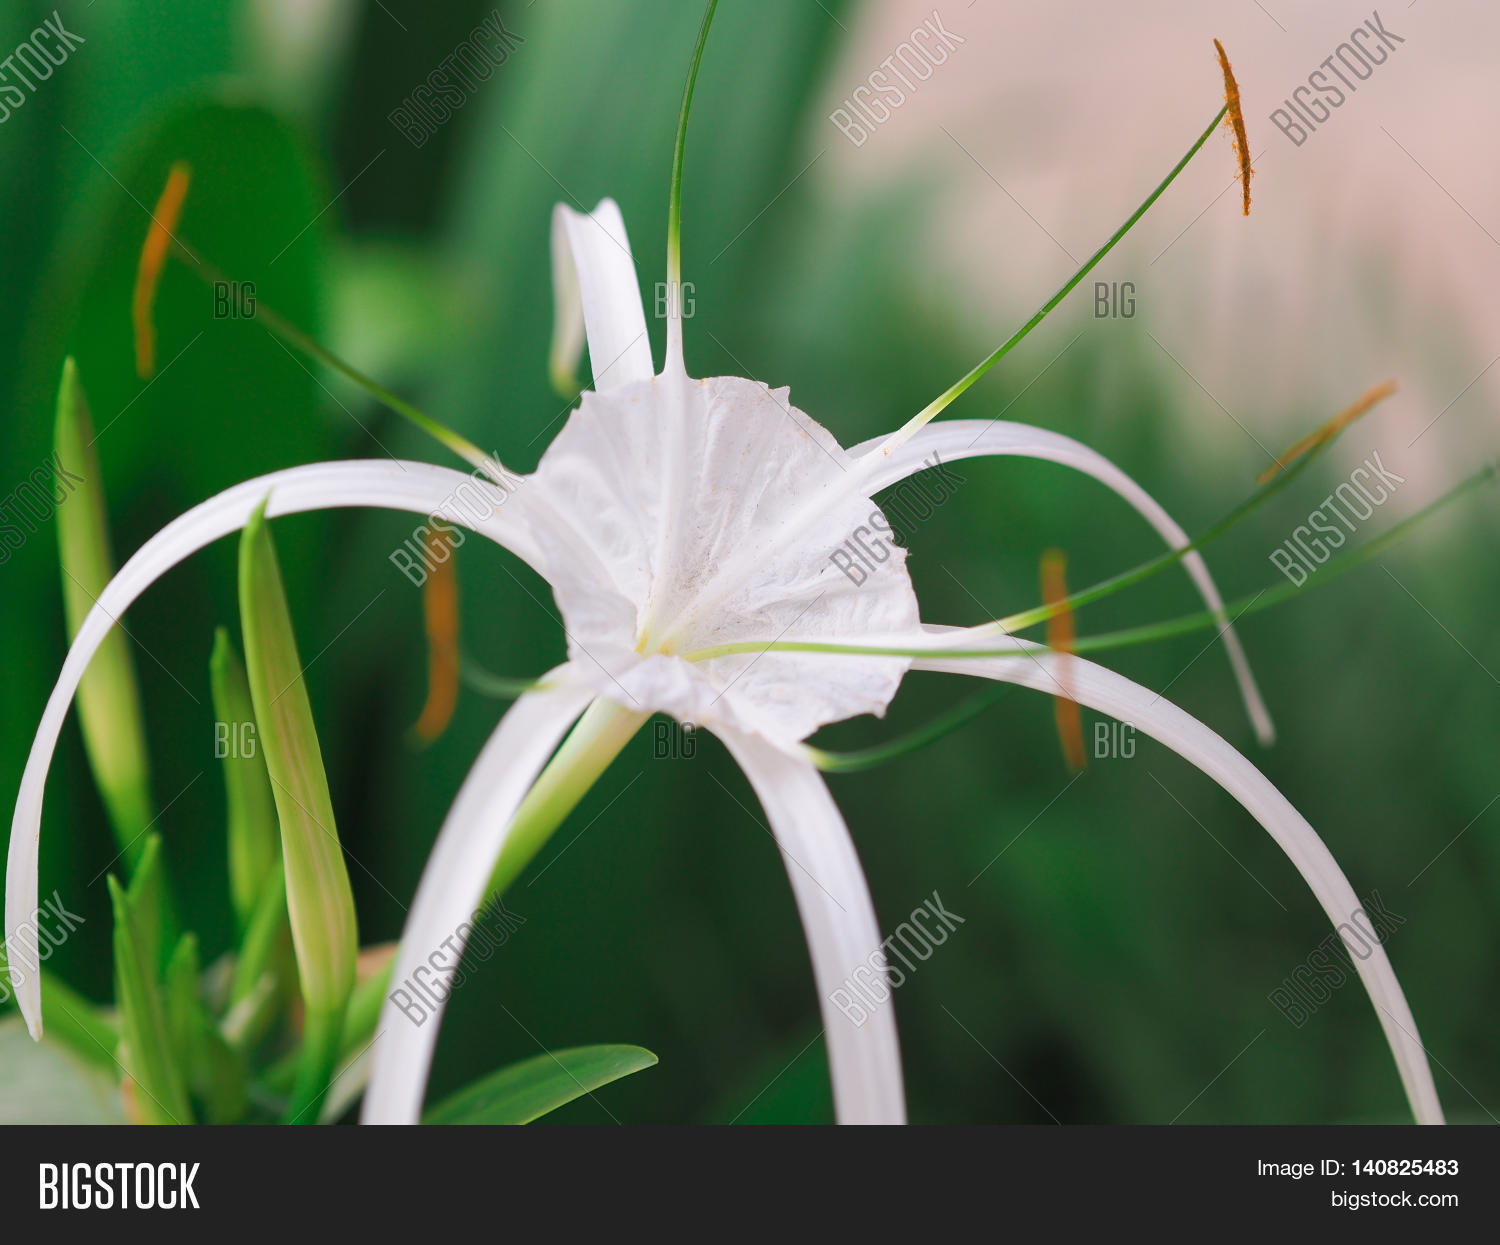 crinum lily cape lily image photo free trial bigstock